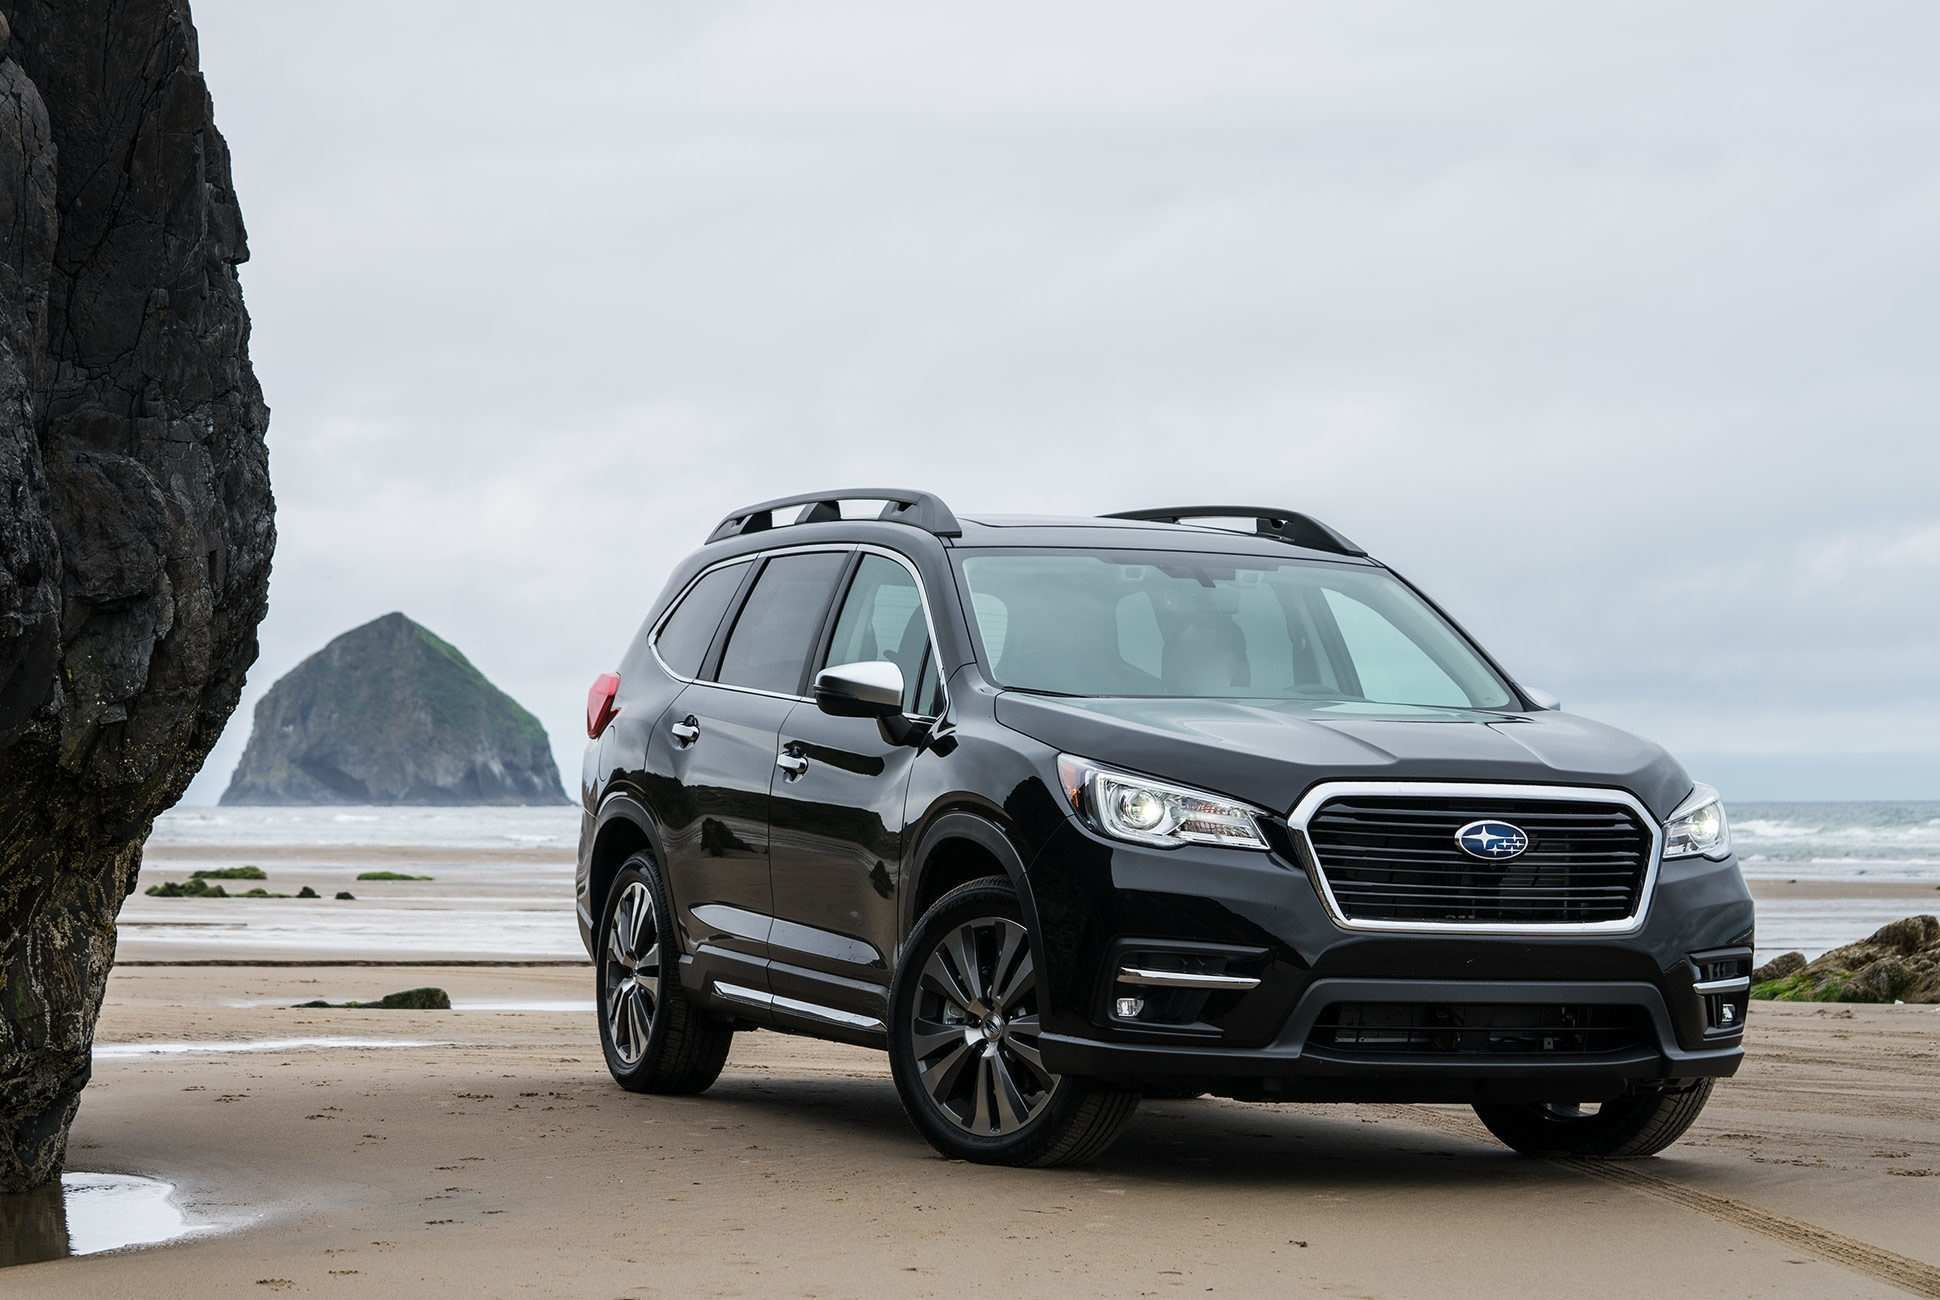 69 The Best Subaru 2019 Ascent Recall Spy Shoot Concept with Best Subaru 2019 Ascent Recall Spy Shoot